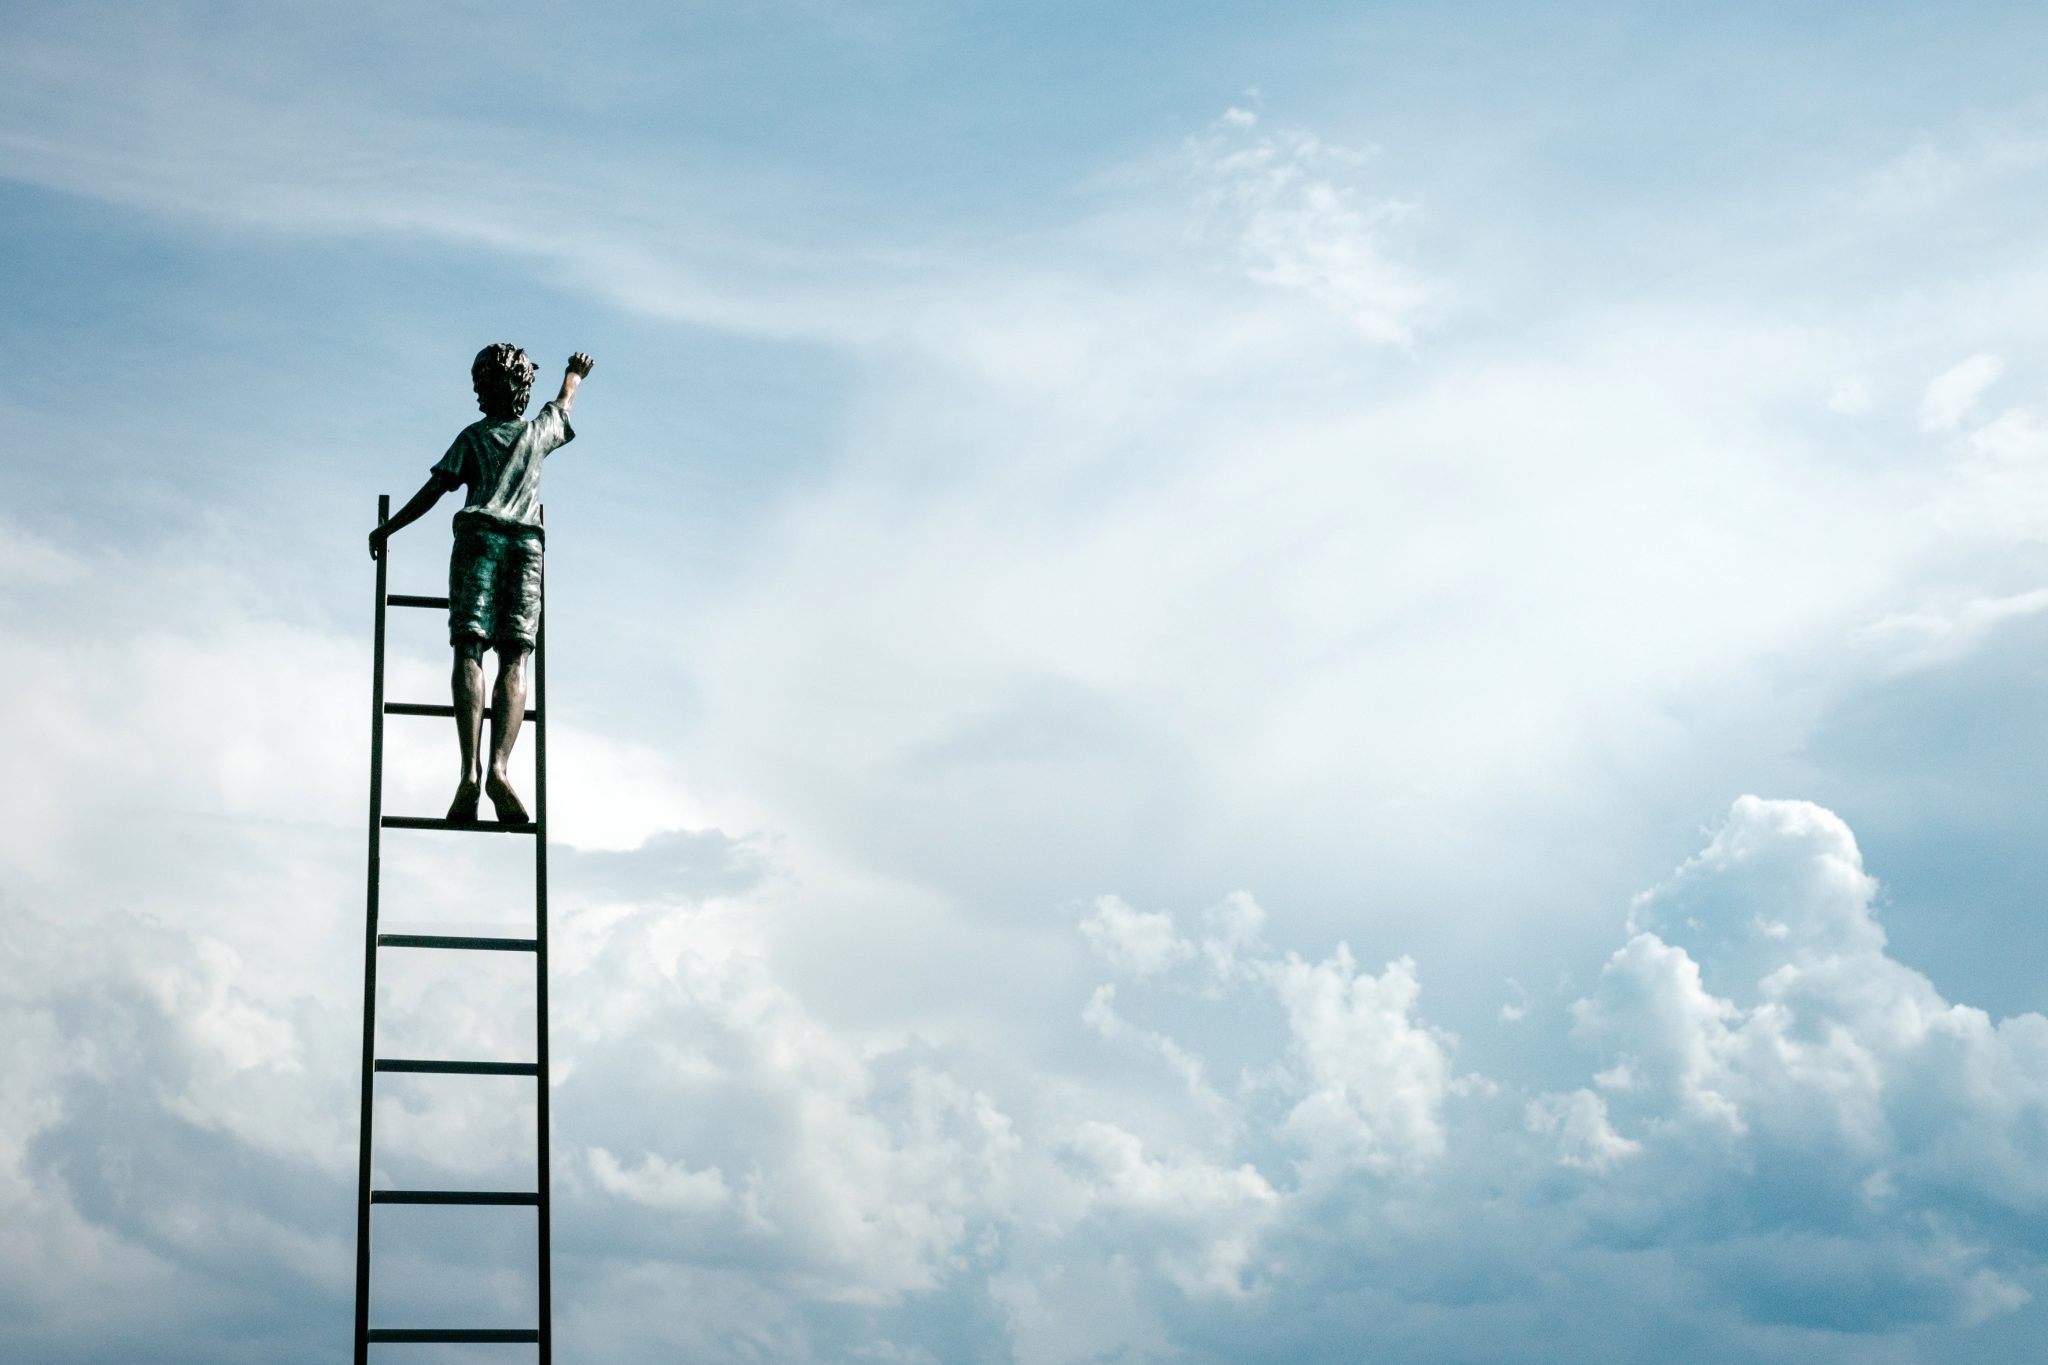 Man climbing a ladder into the clouds